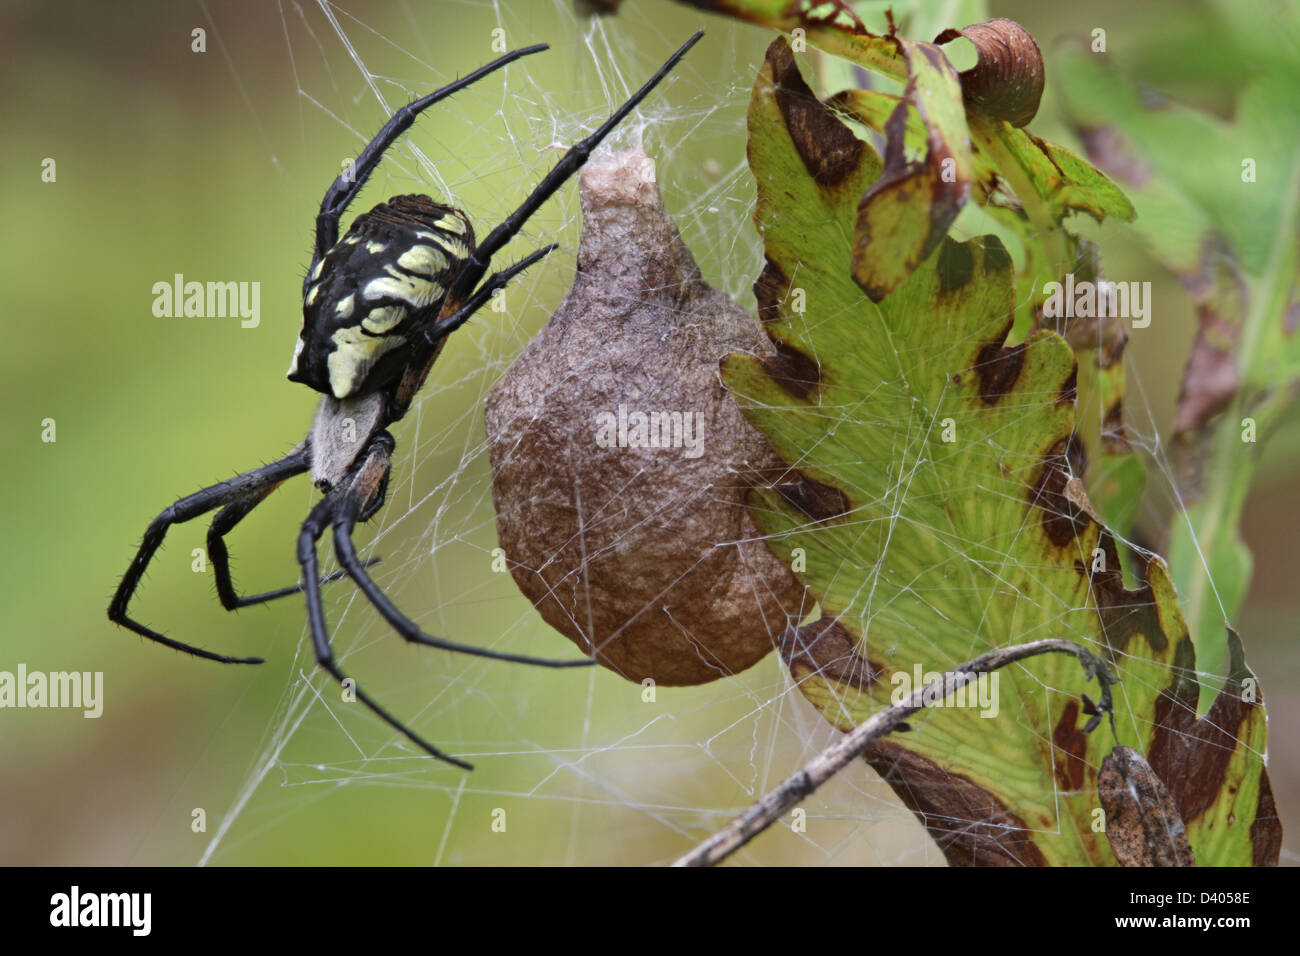 A Black And Yellow Garden Spider Argiope Aurantia With An Egg Case Stock Photo 54093886 Alamy